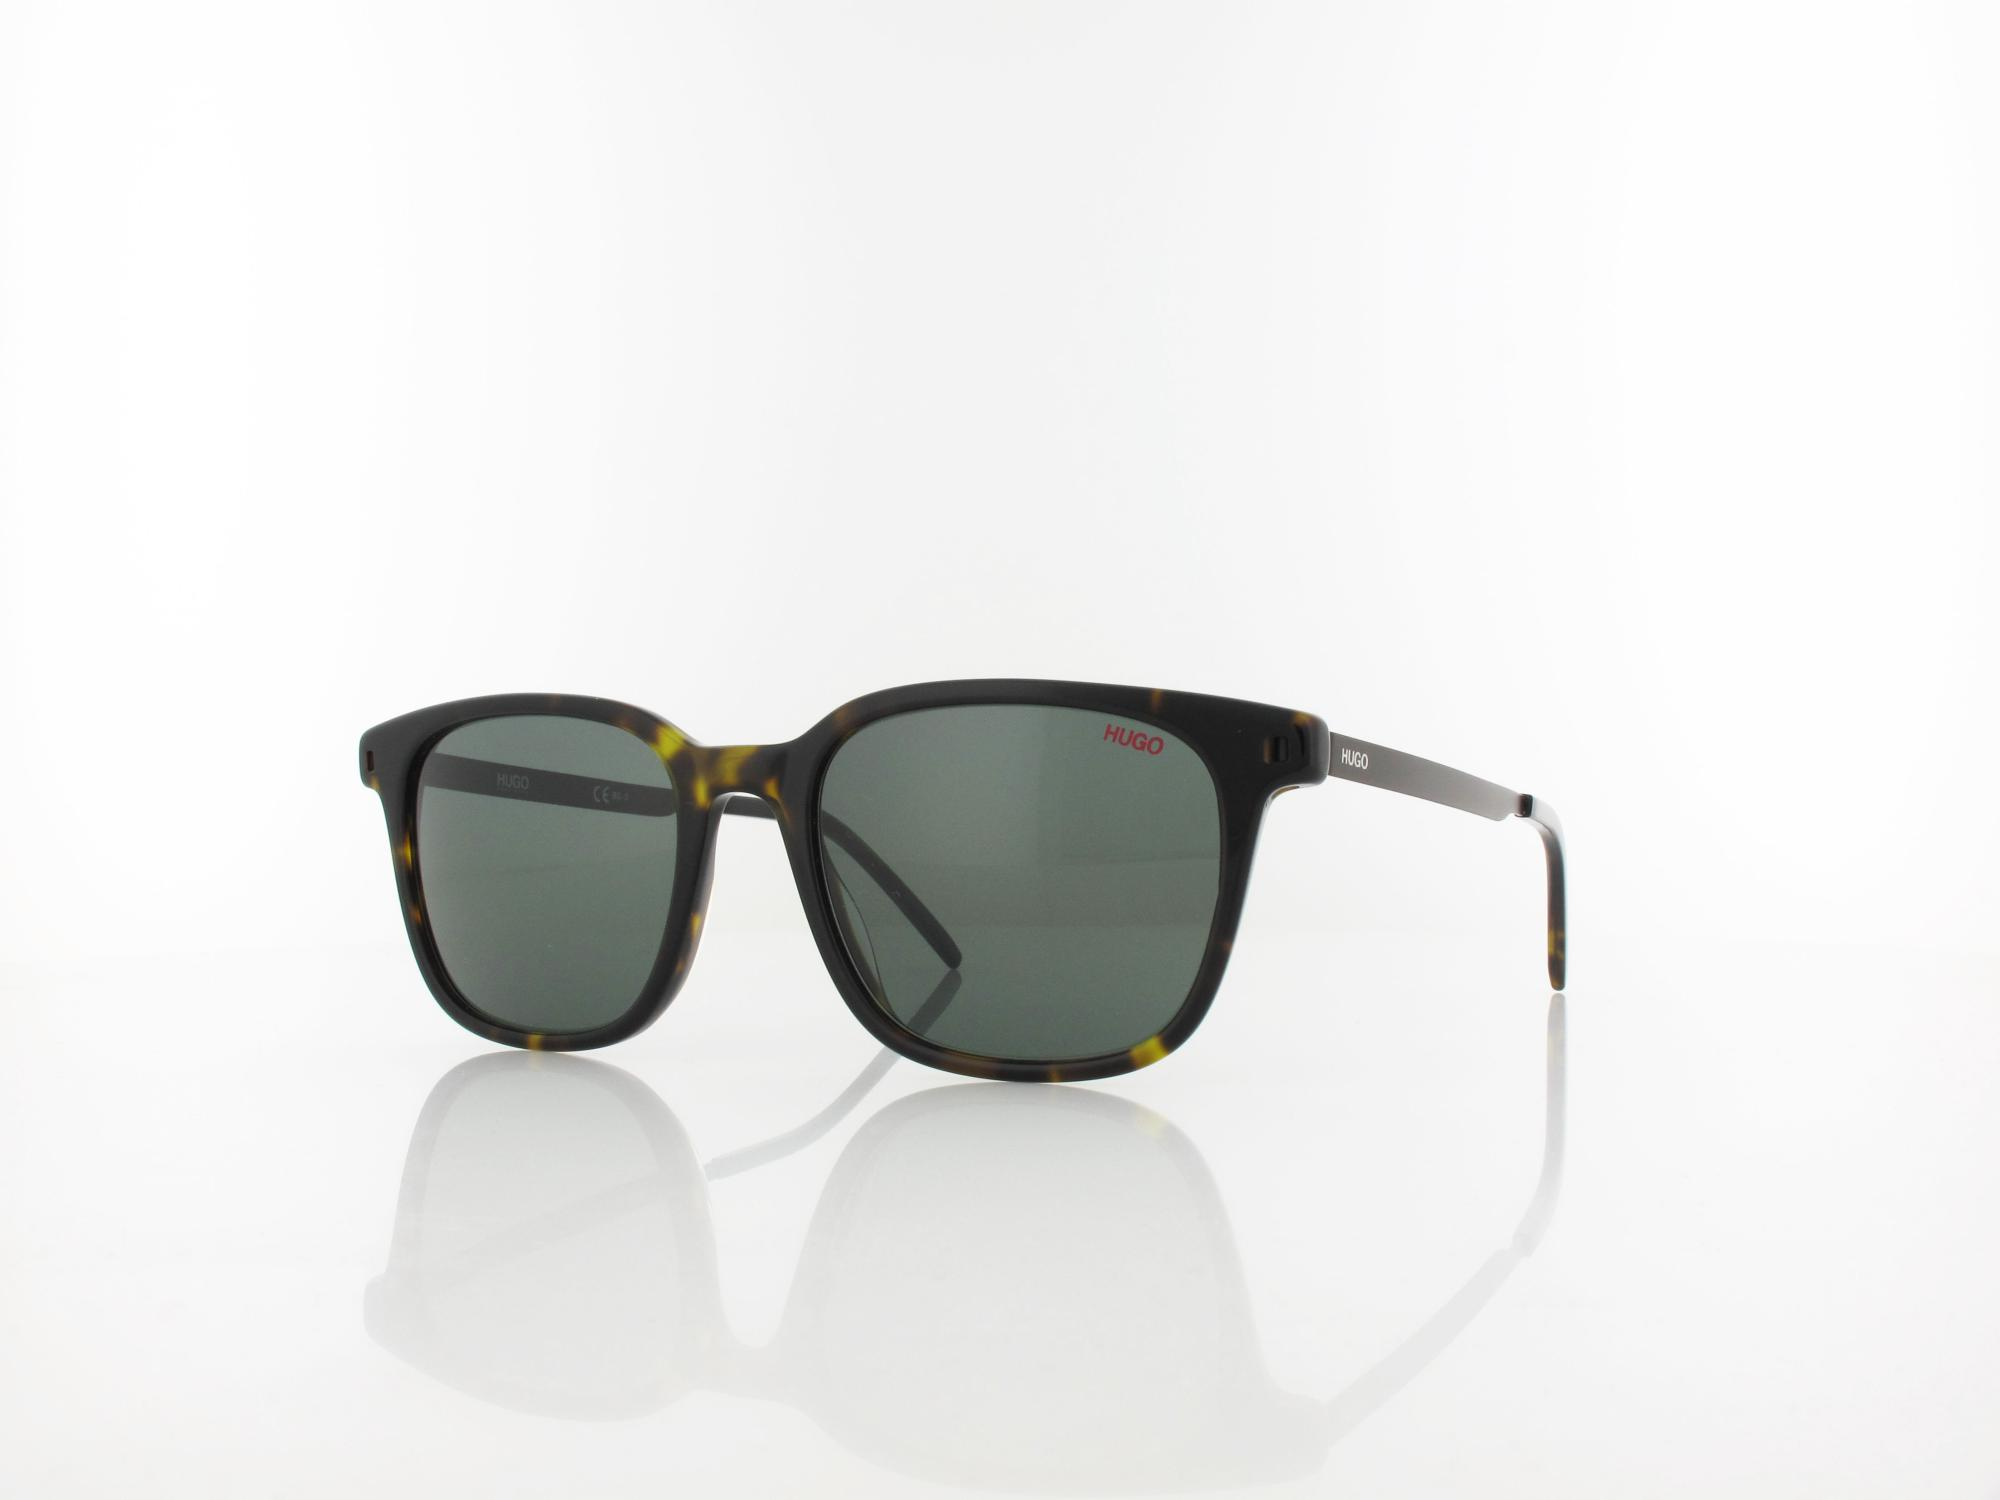 Hugo | HG 1036/S 086/QT 51 | dark havana / green